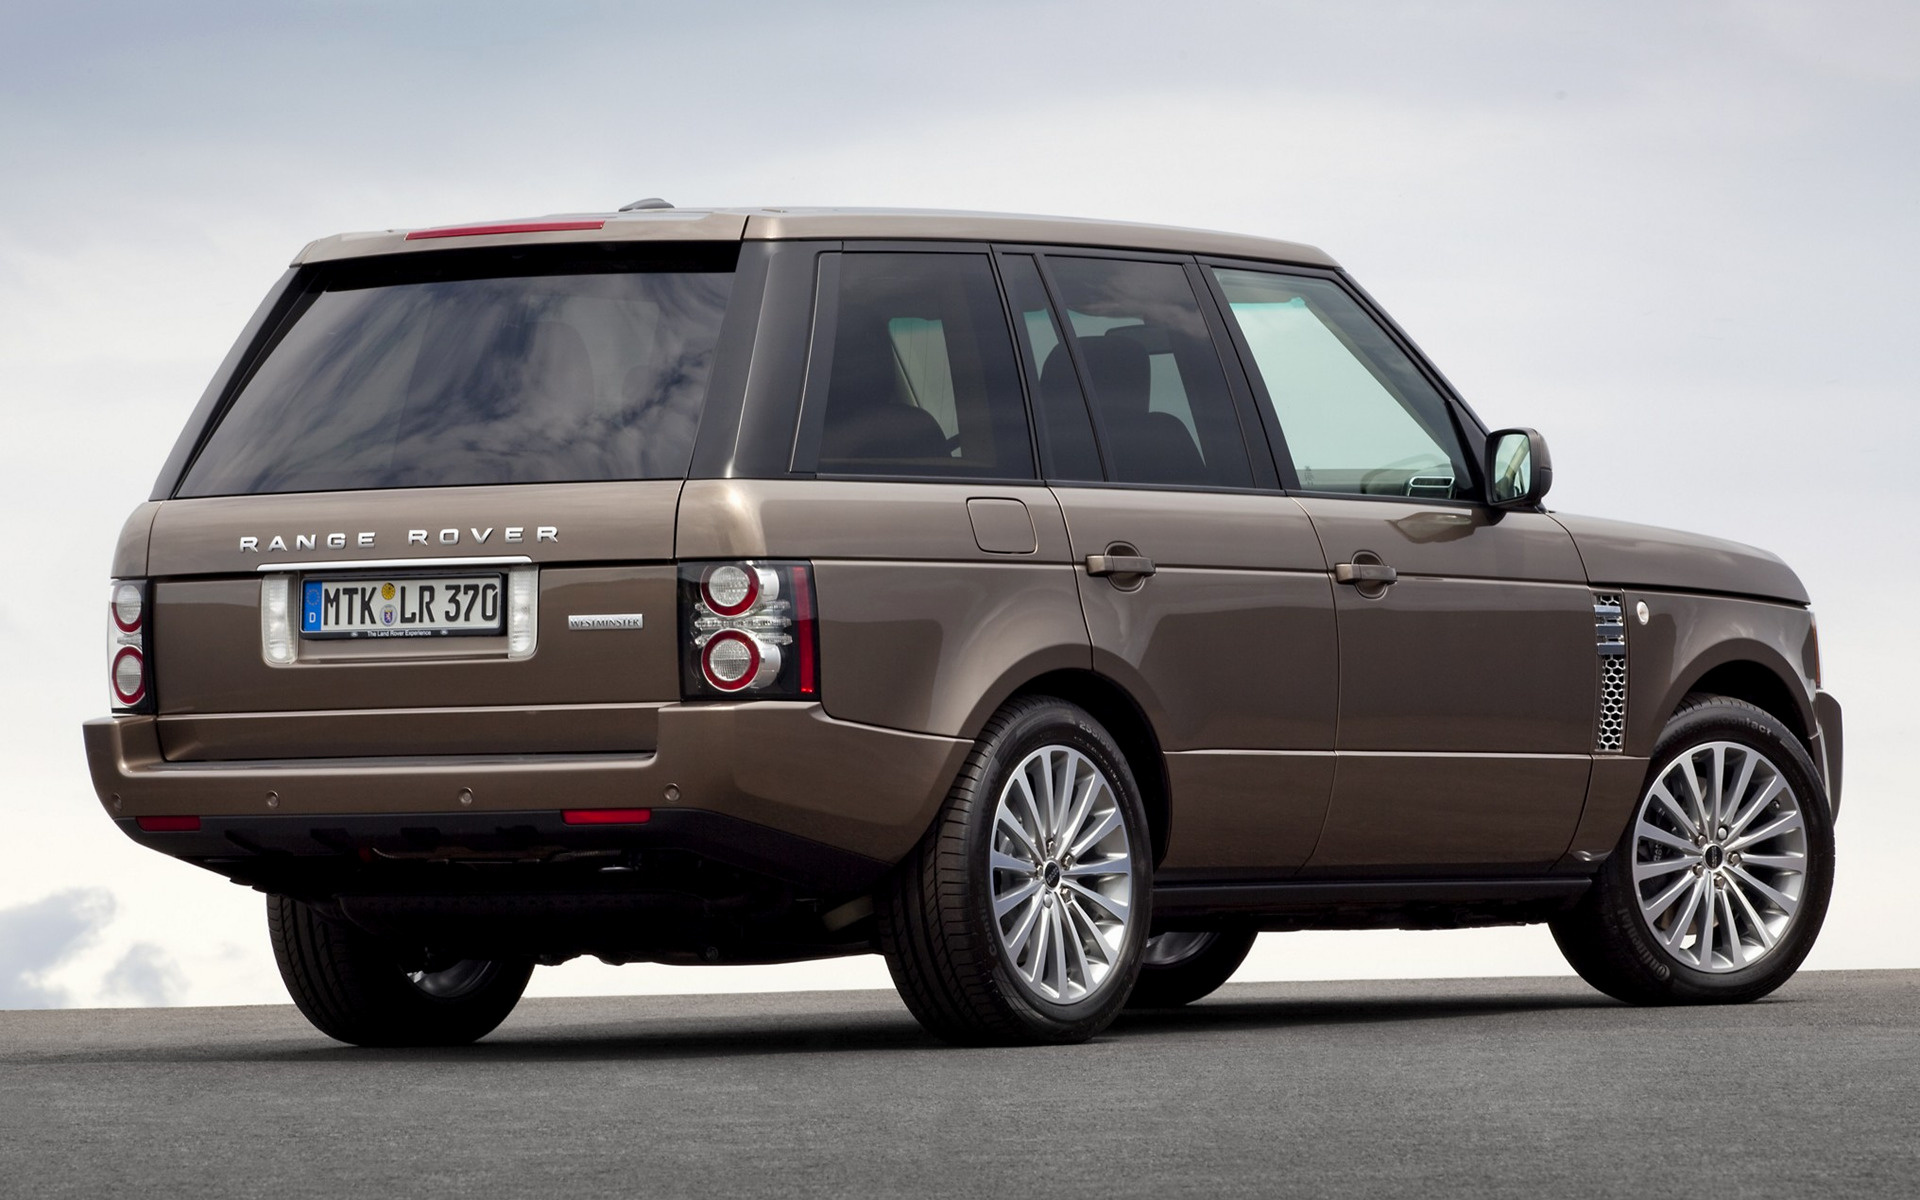 Mercedes Benz Westminster >> Range Rover Westminster (2012) Wallpapers and HD Images - Car Pixel